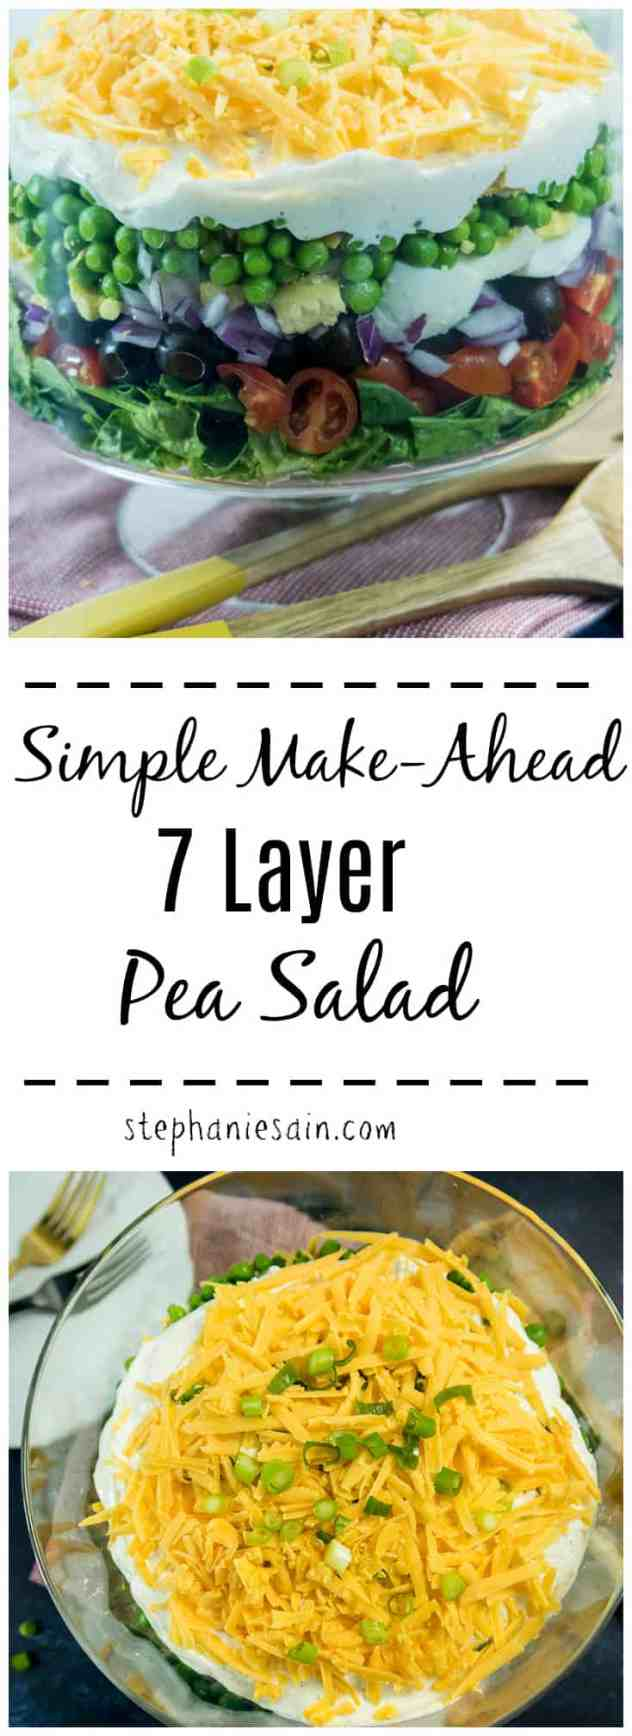 This Simple Make Ahead 7 Layer Pea Salad is perfect for parties, potlucks or family gatherings. Loaded with fresh veggies, eggs, cheese and a creamy mayo dressing. Gluten Free & Vegetarian.